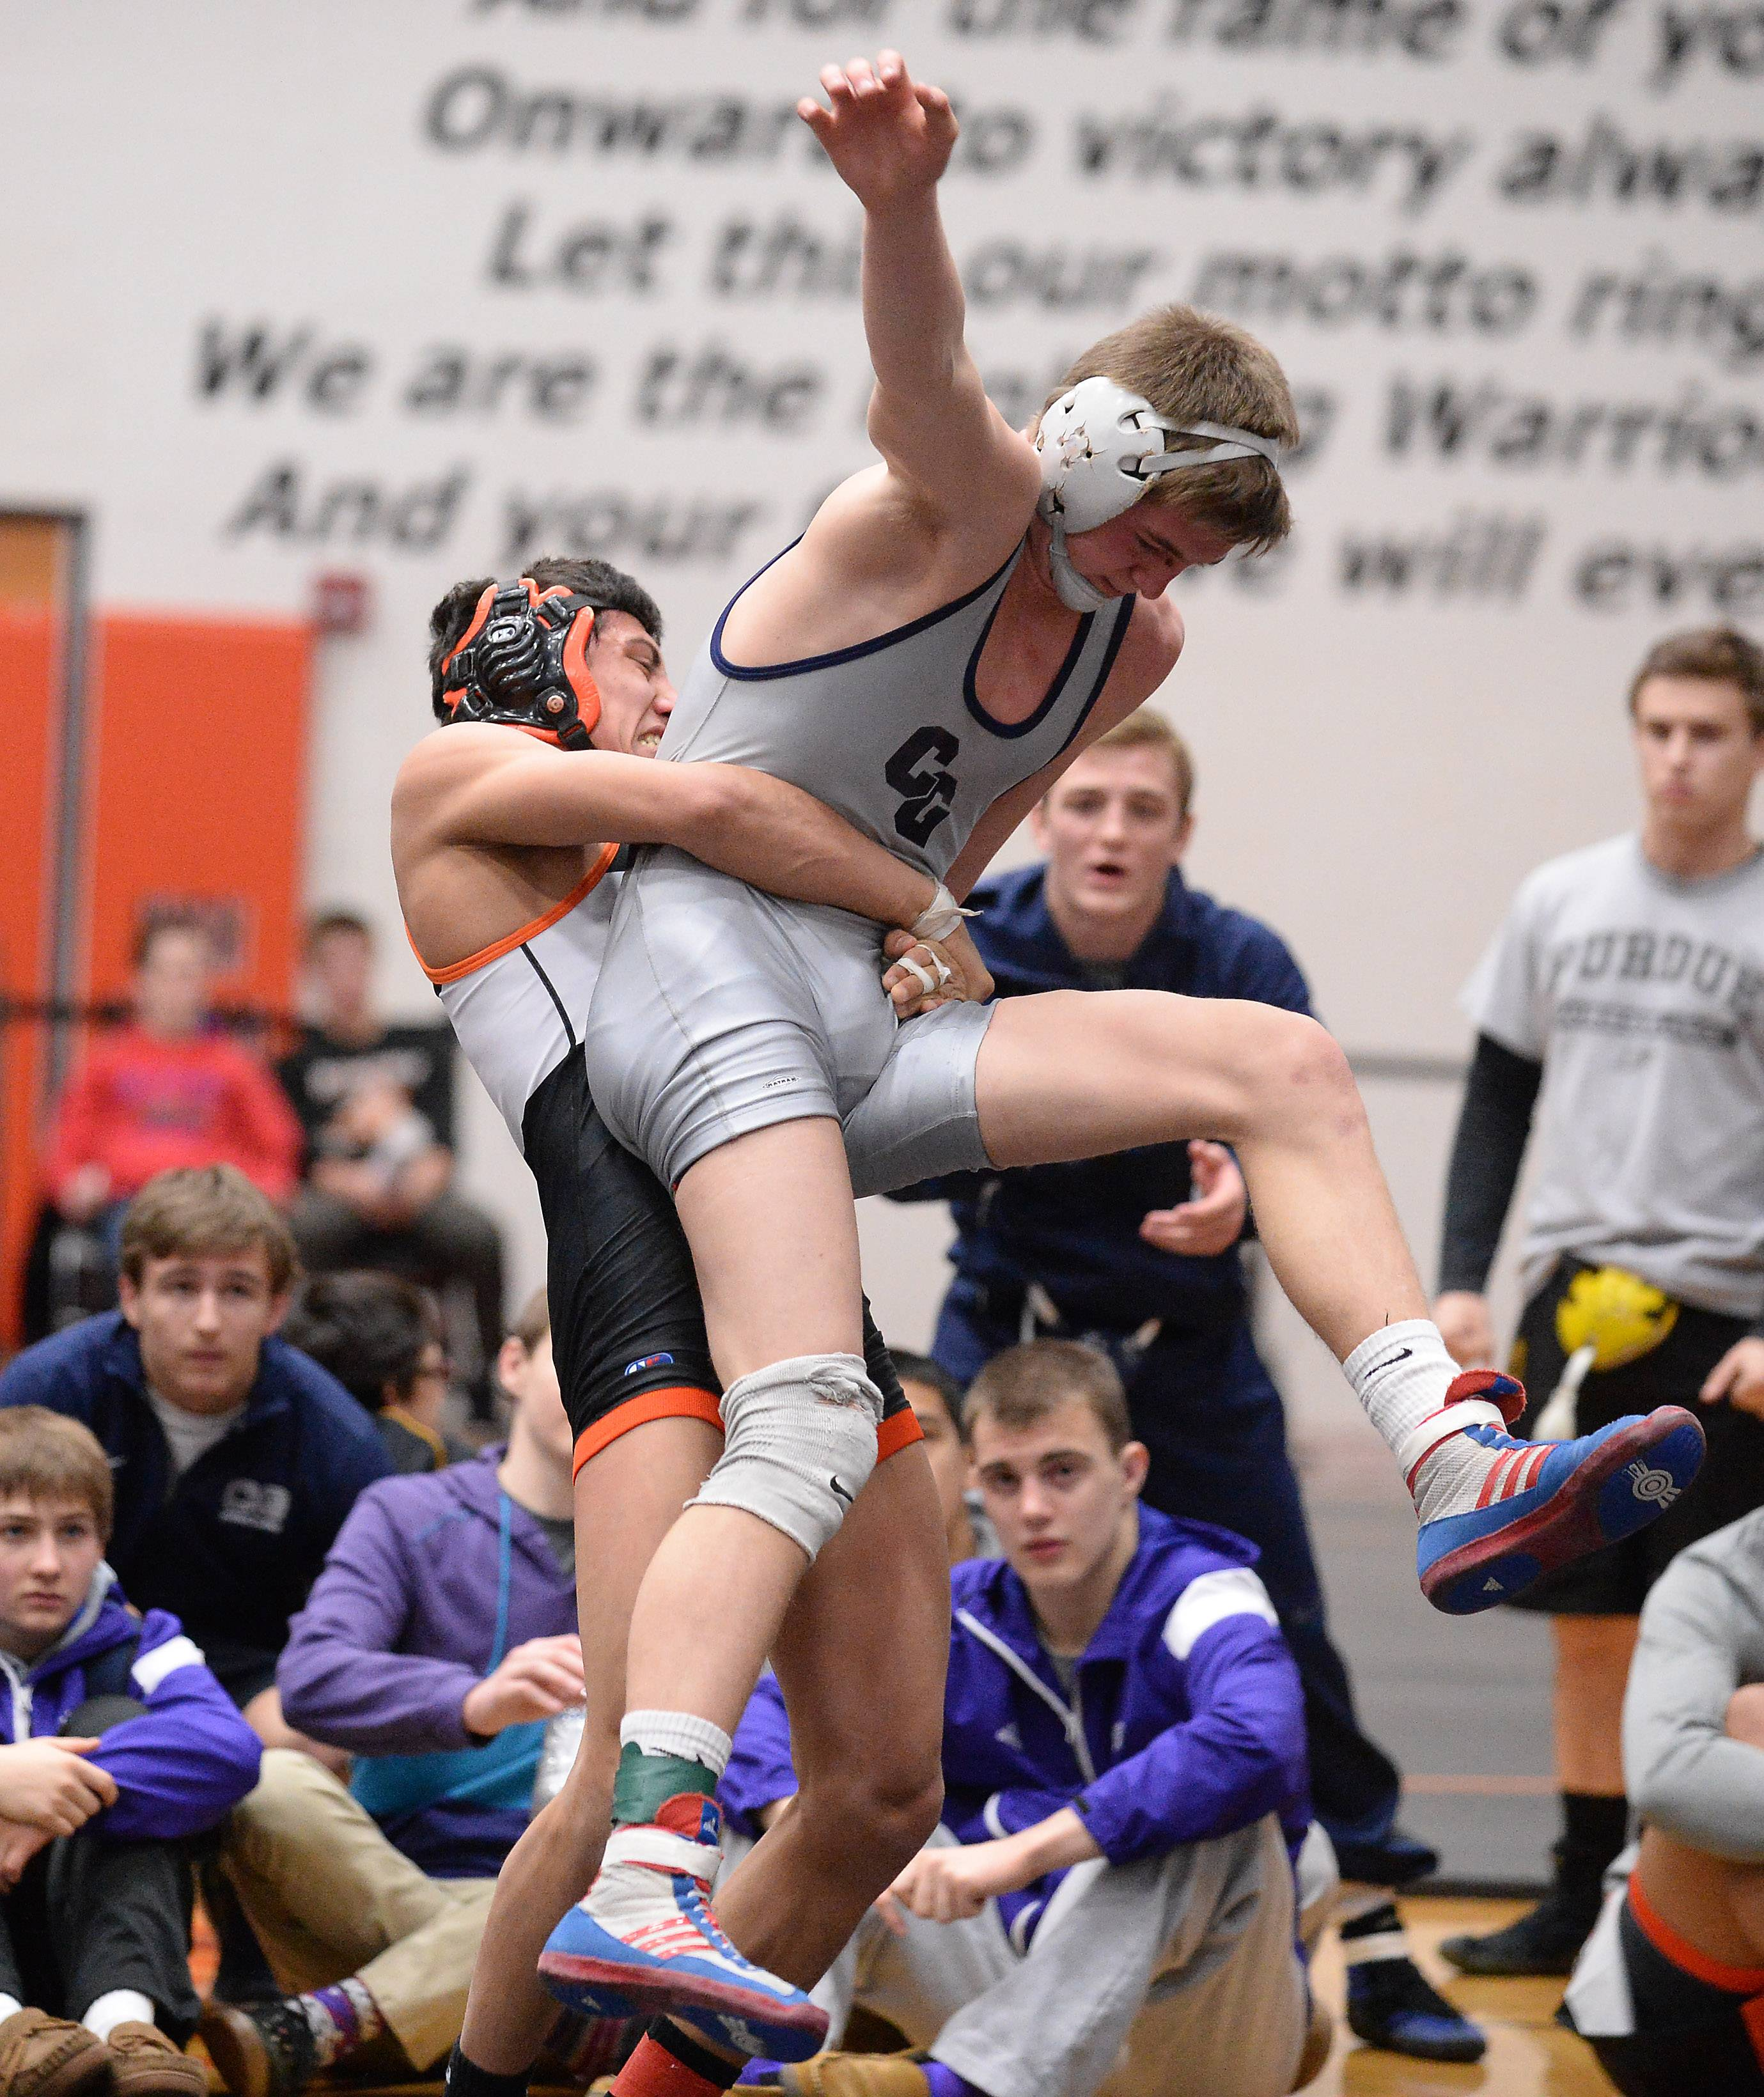 Mike Peterson of Crystal Lake Central overpowers John Cullen of Cary Grove in the 138 weight class for the win at the 2015 Fox Valley Conference Wrestling Tournament at McHenry High School.